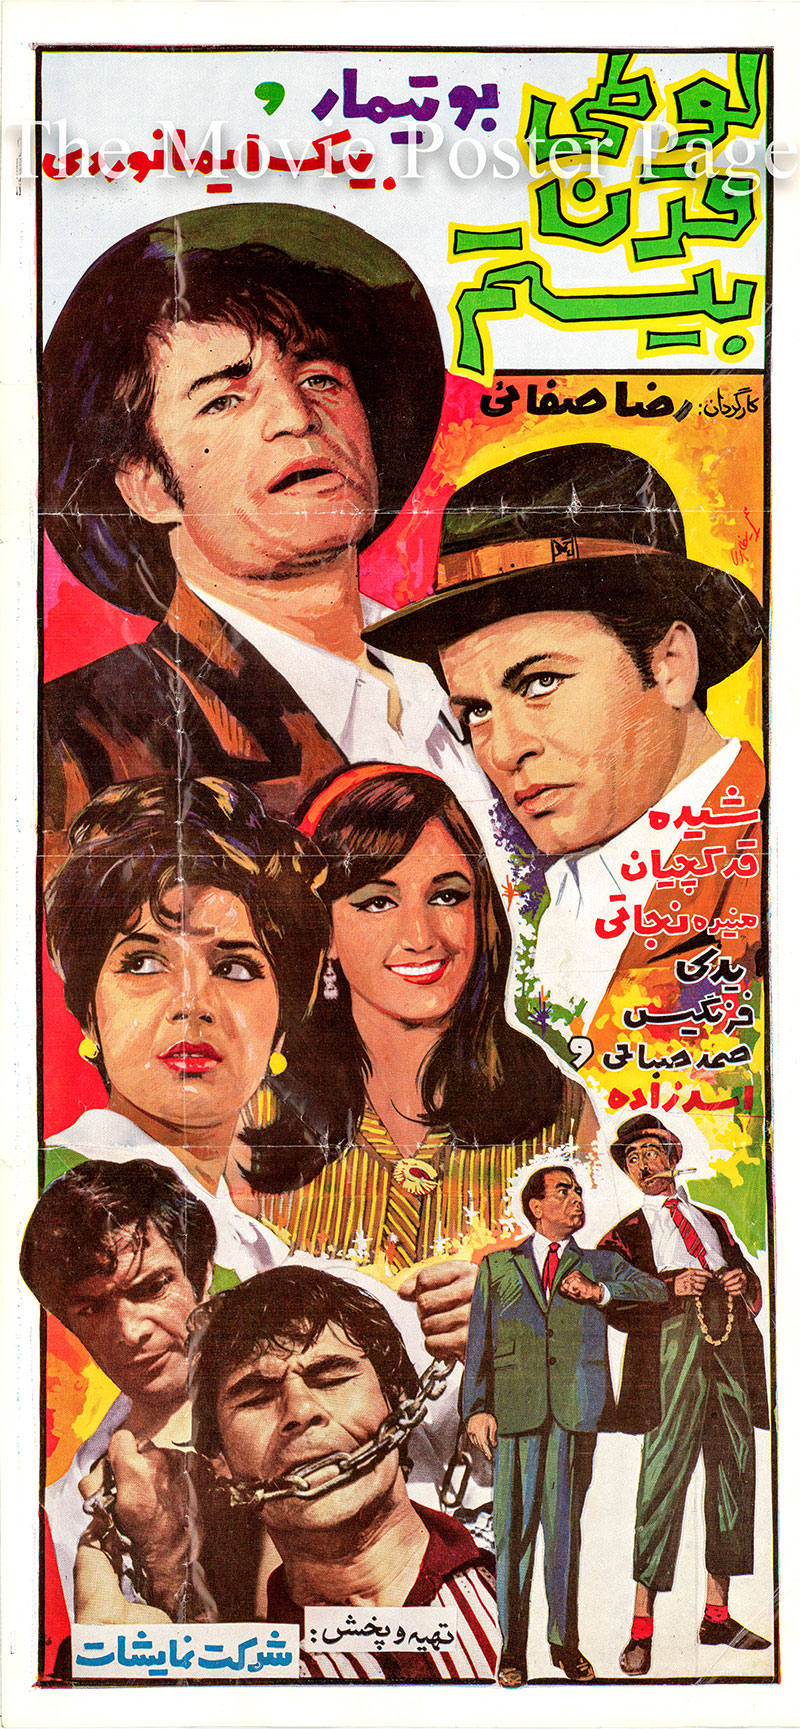 Pictured is an Iranian promotional poster for the 1968 Reza Safai film 20th Century Ruffian starring Reza Beyk Imanverdi.